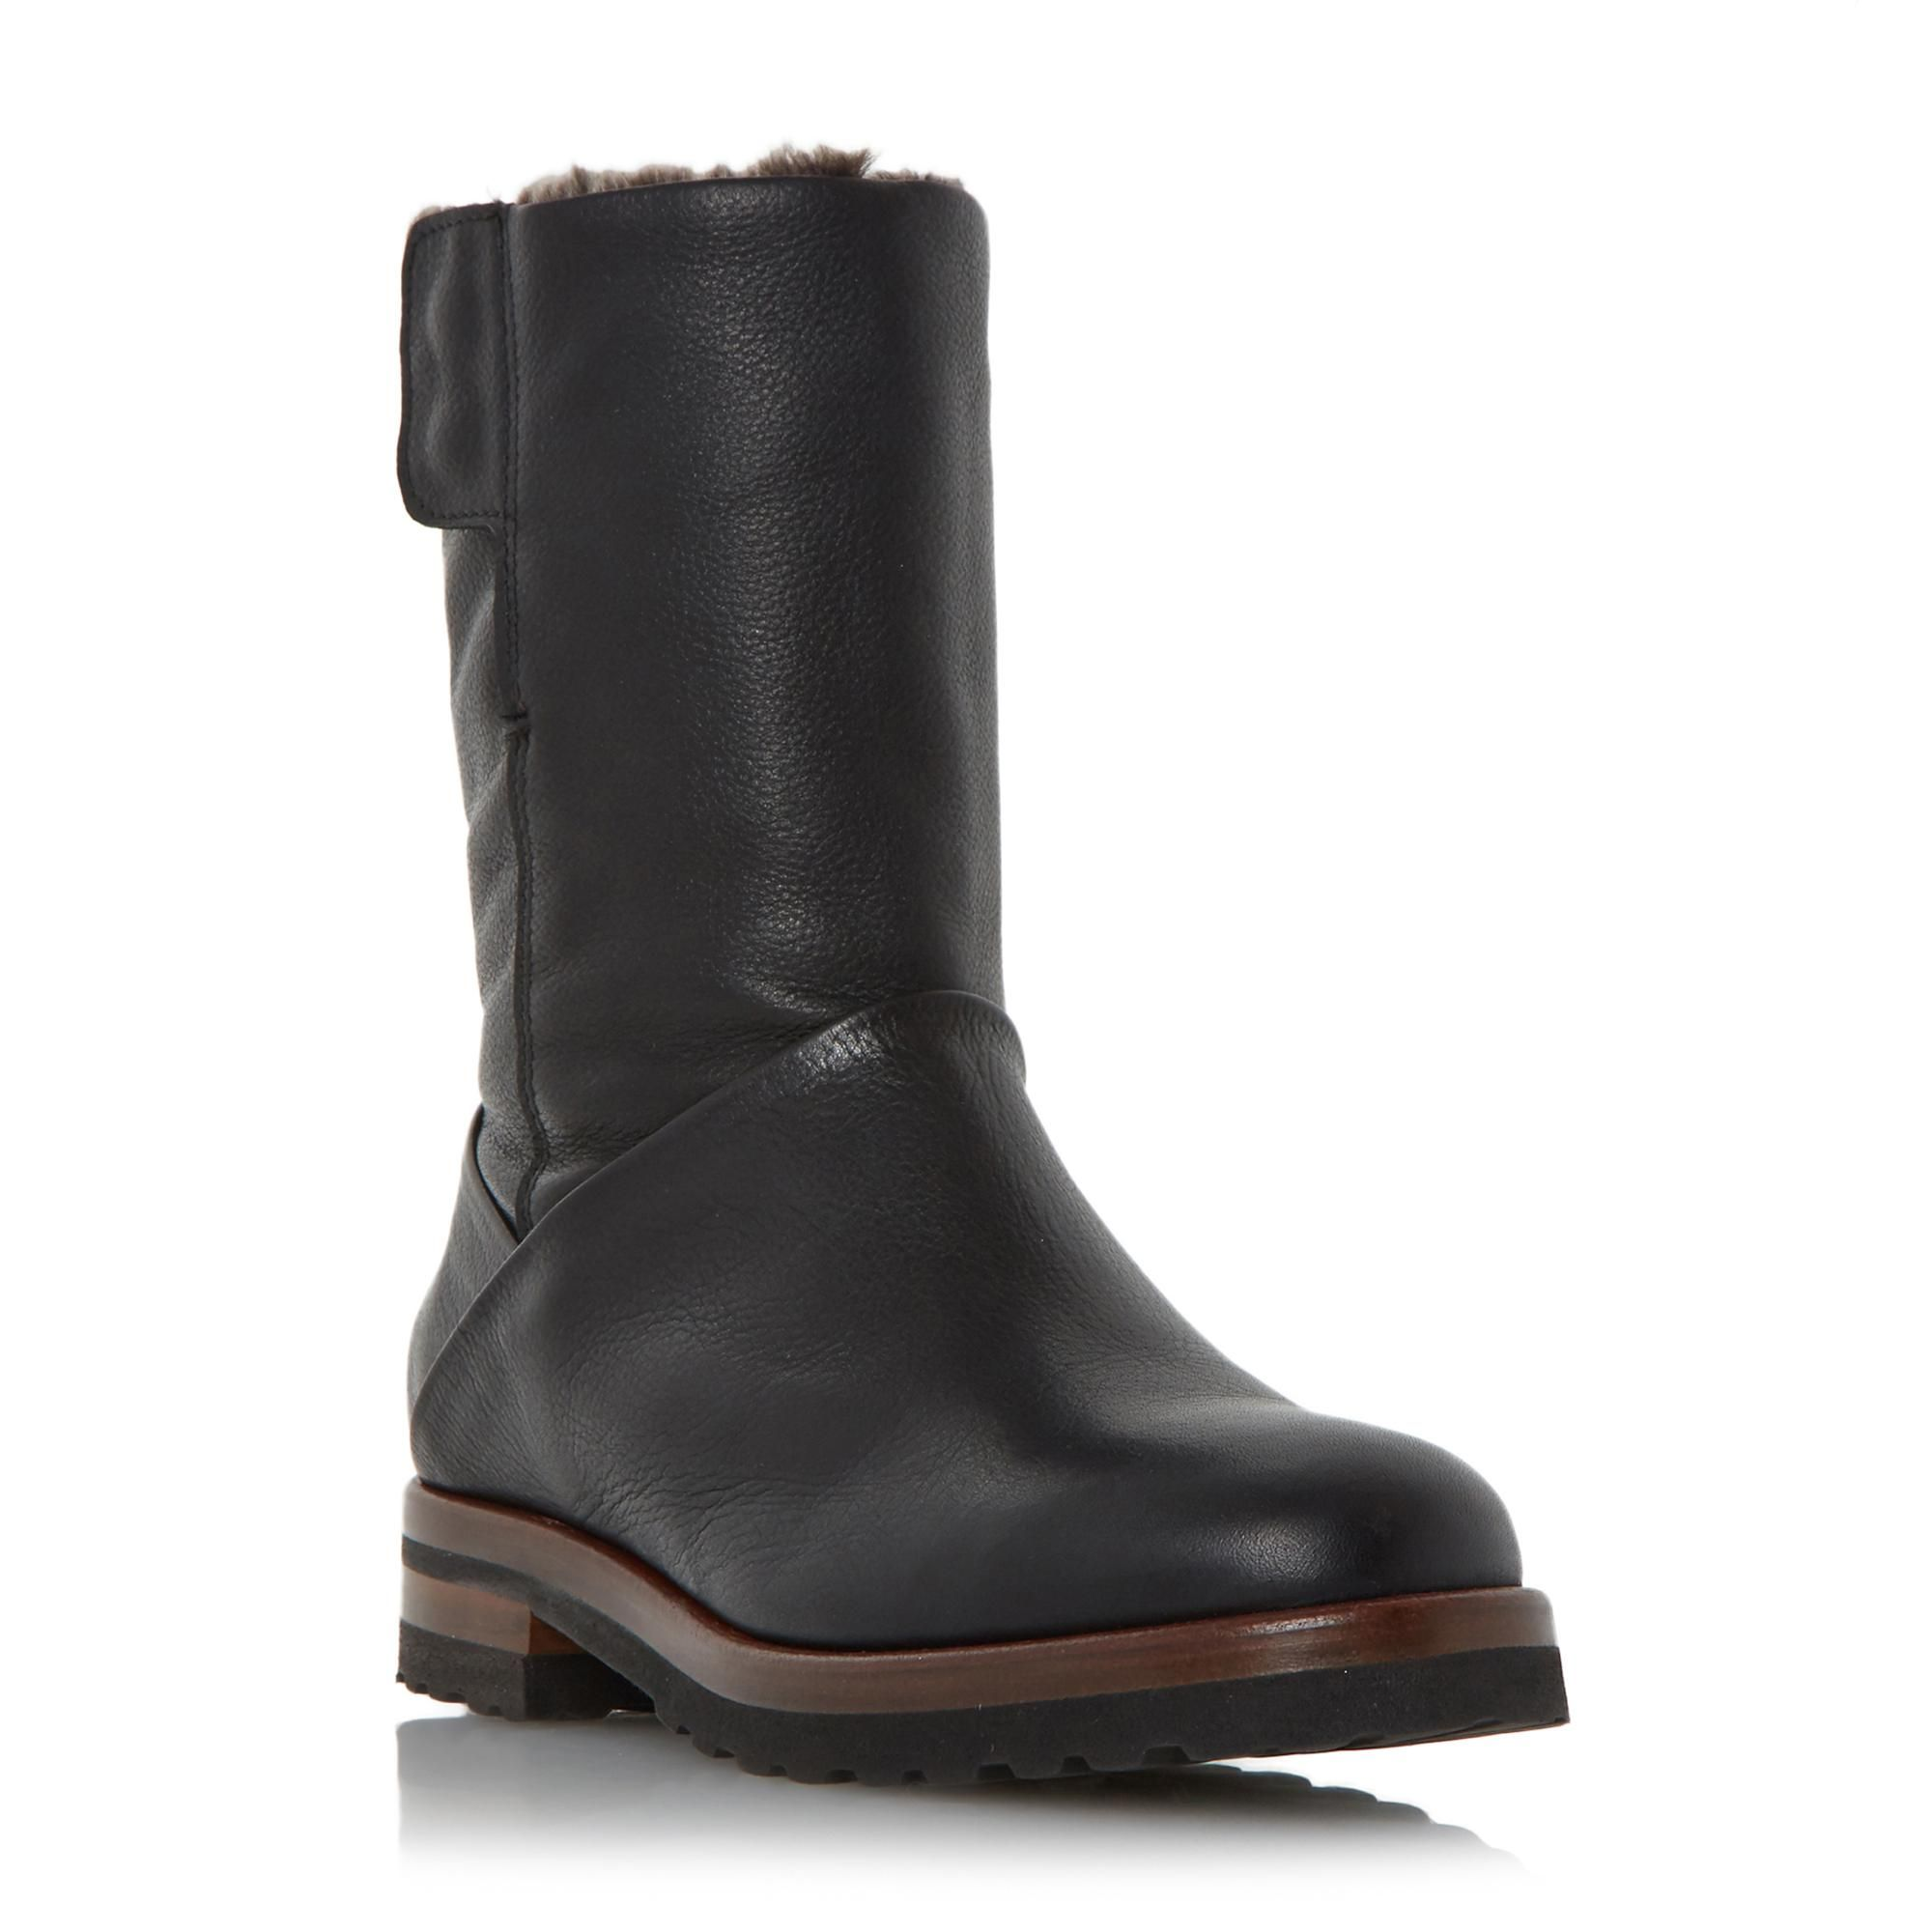 DUNE LADIES RAYNER - Warm Lined Calf Boot - black | Dune Shoes Online